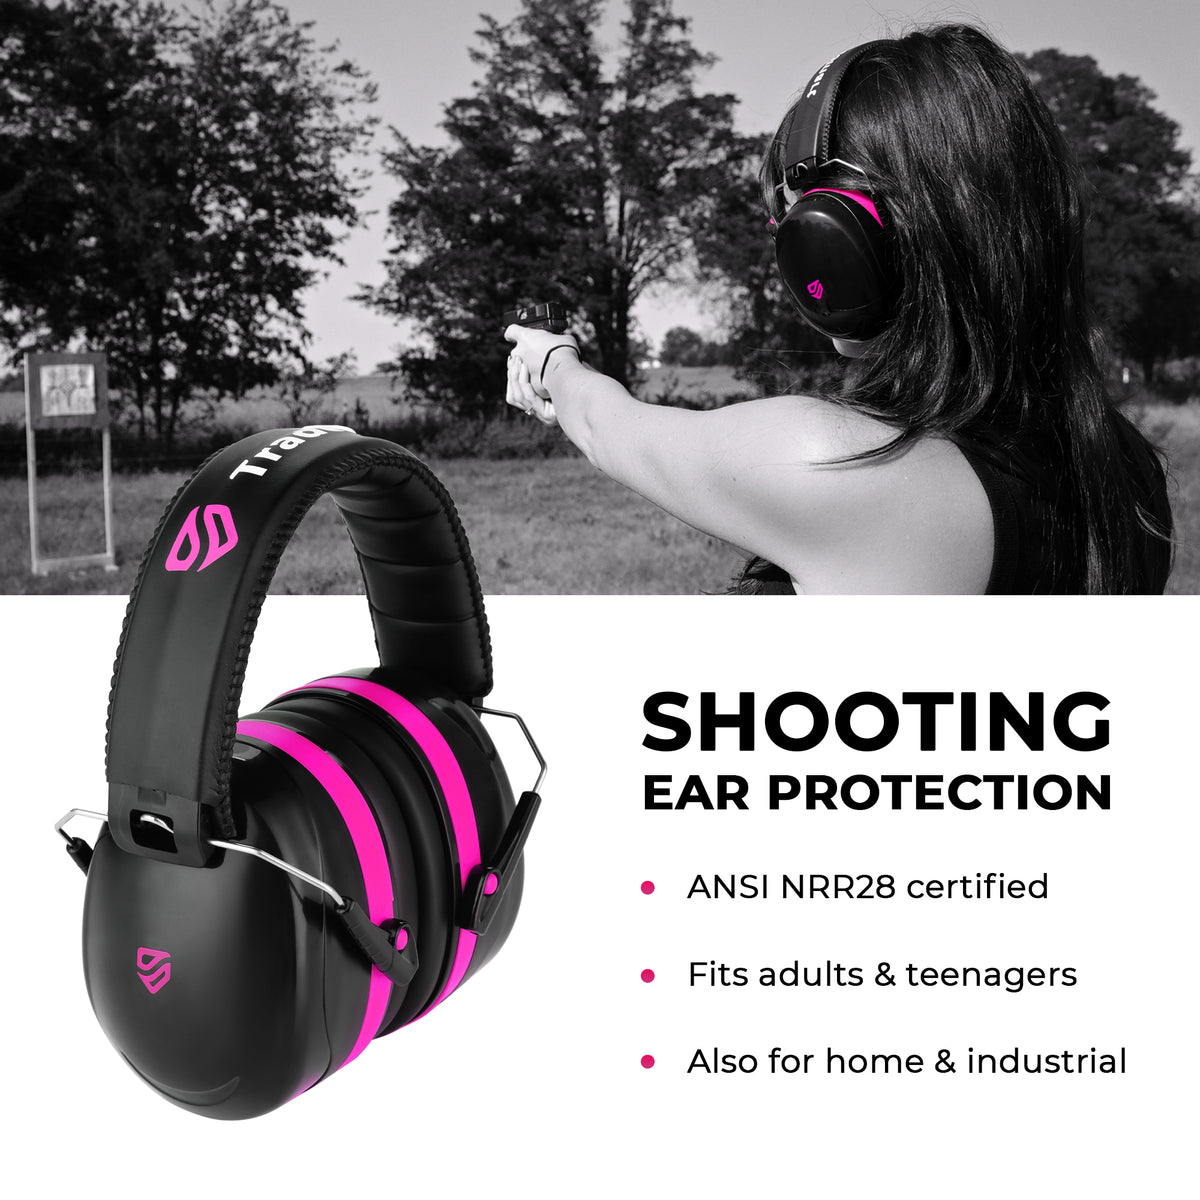 TRADESMART PROFESSIONAL - Pink Earmuffs, Indoor/Outdoor Safety Glasses, Protective Case & Earplugs